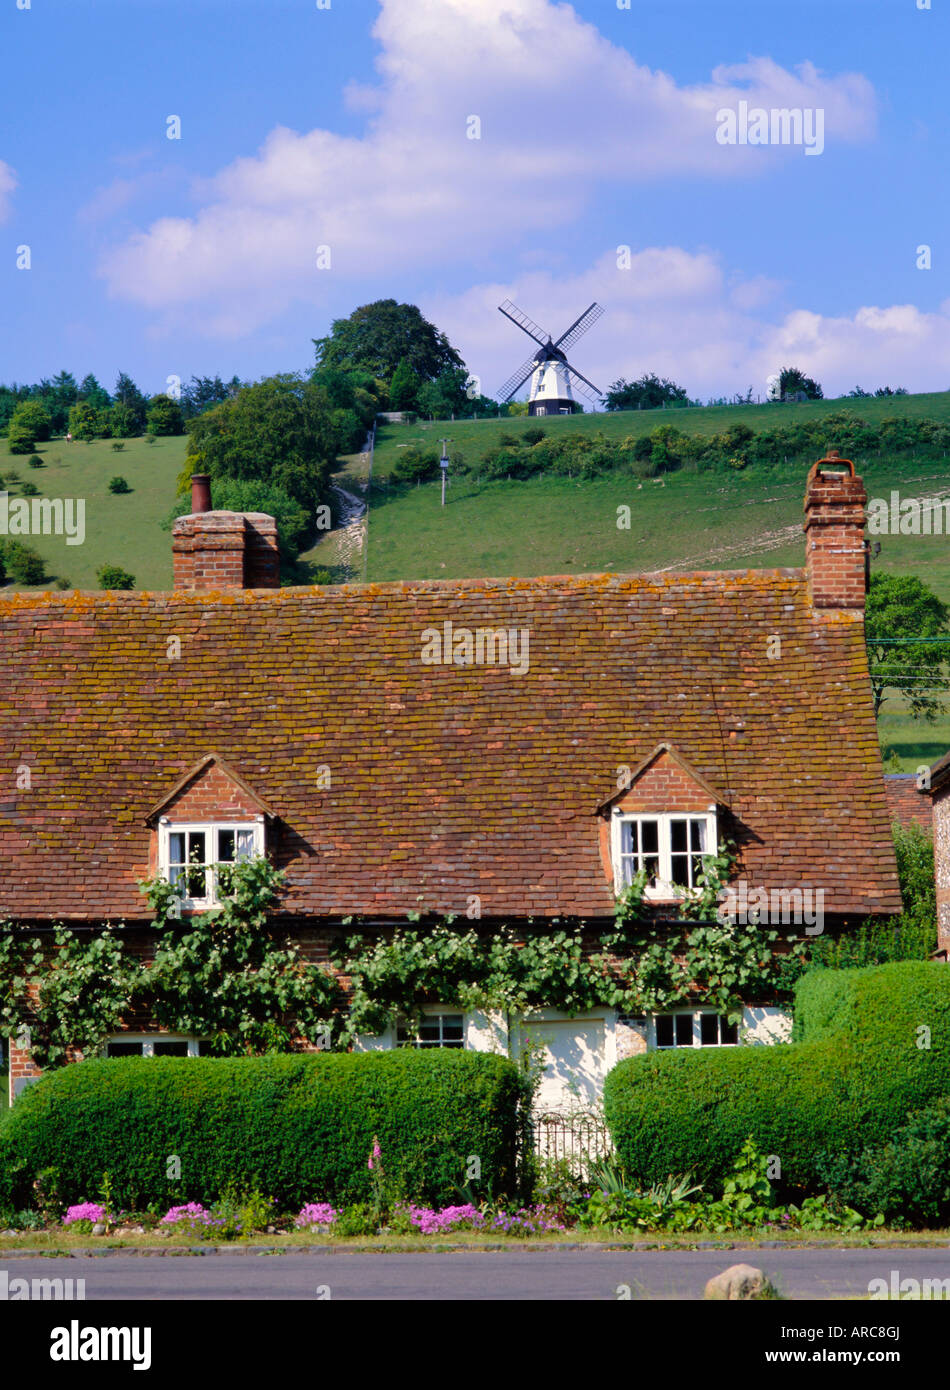 Windmill overlooking the village of Turville in the Chilterns, Buckinghamshire, England, UK, Europe - Stock Image